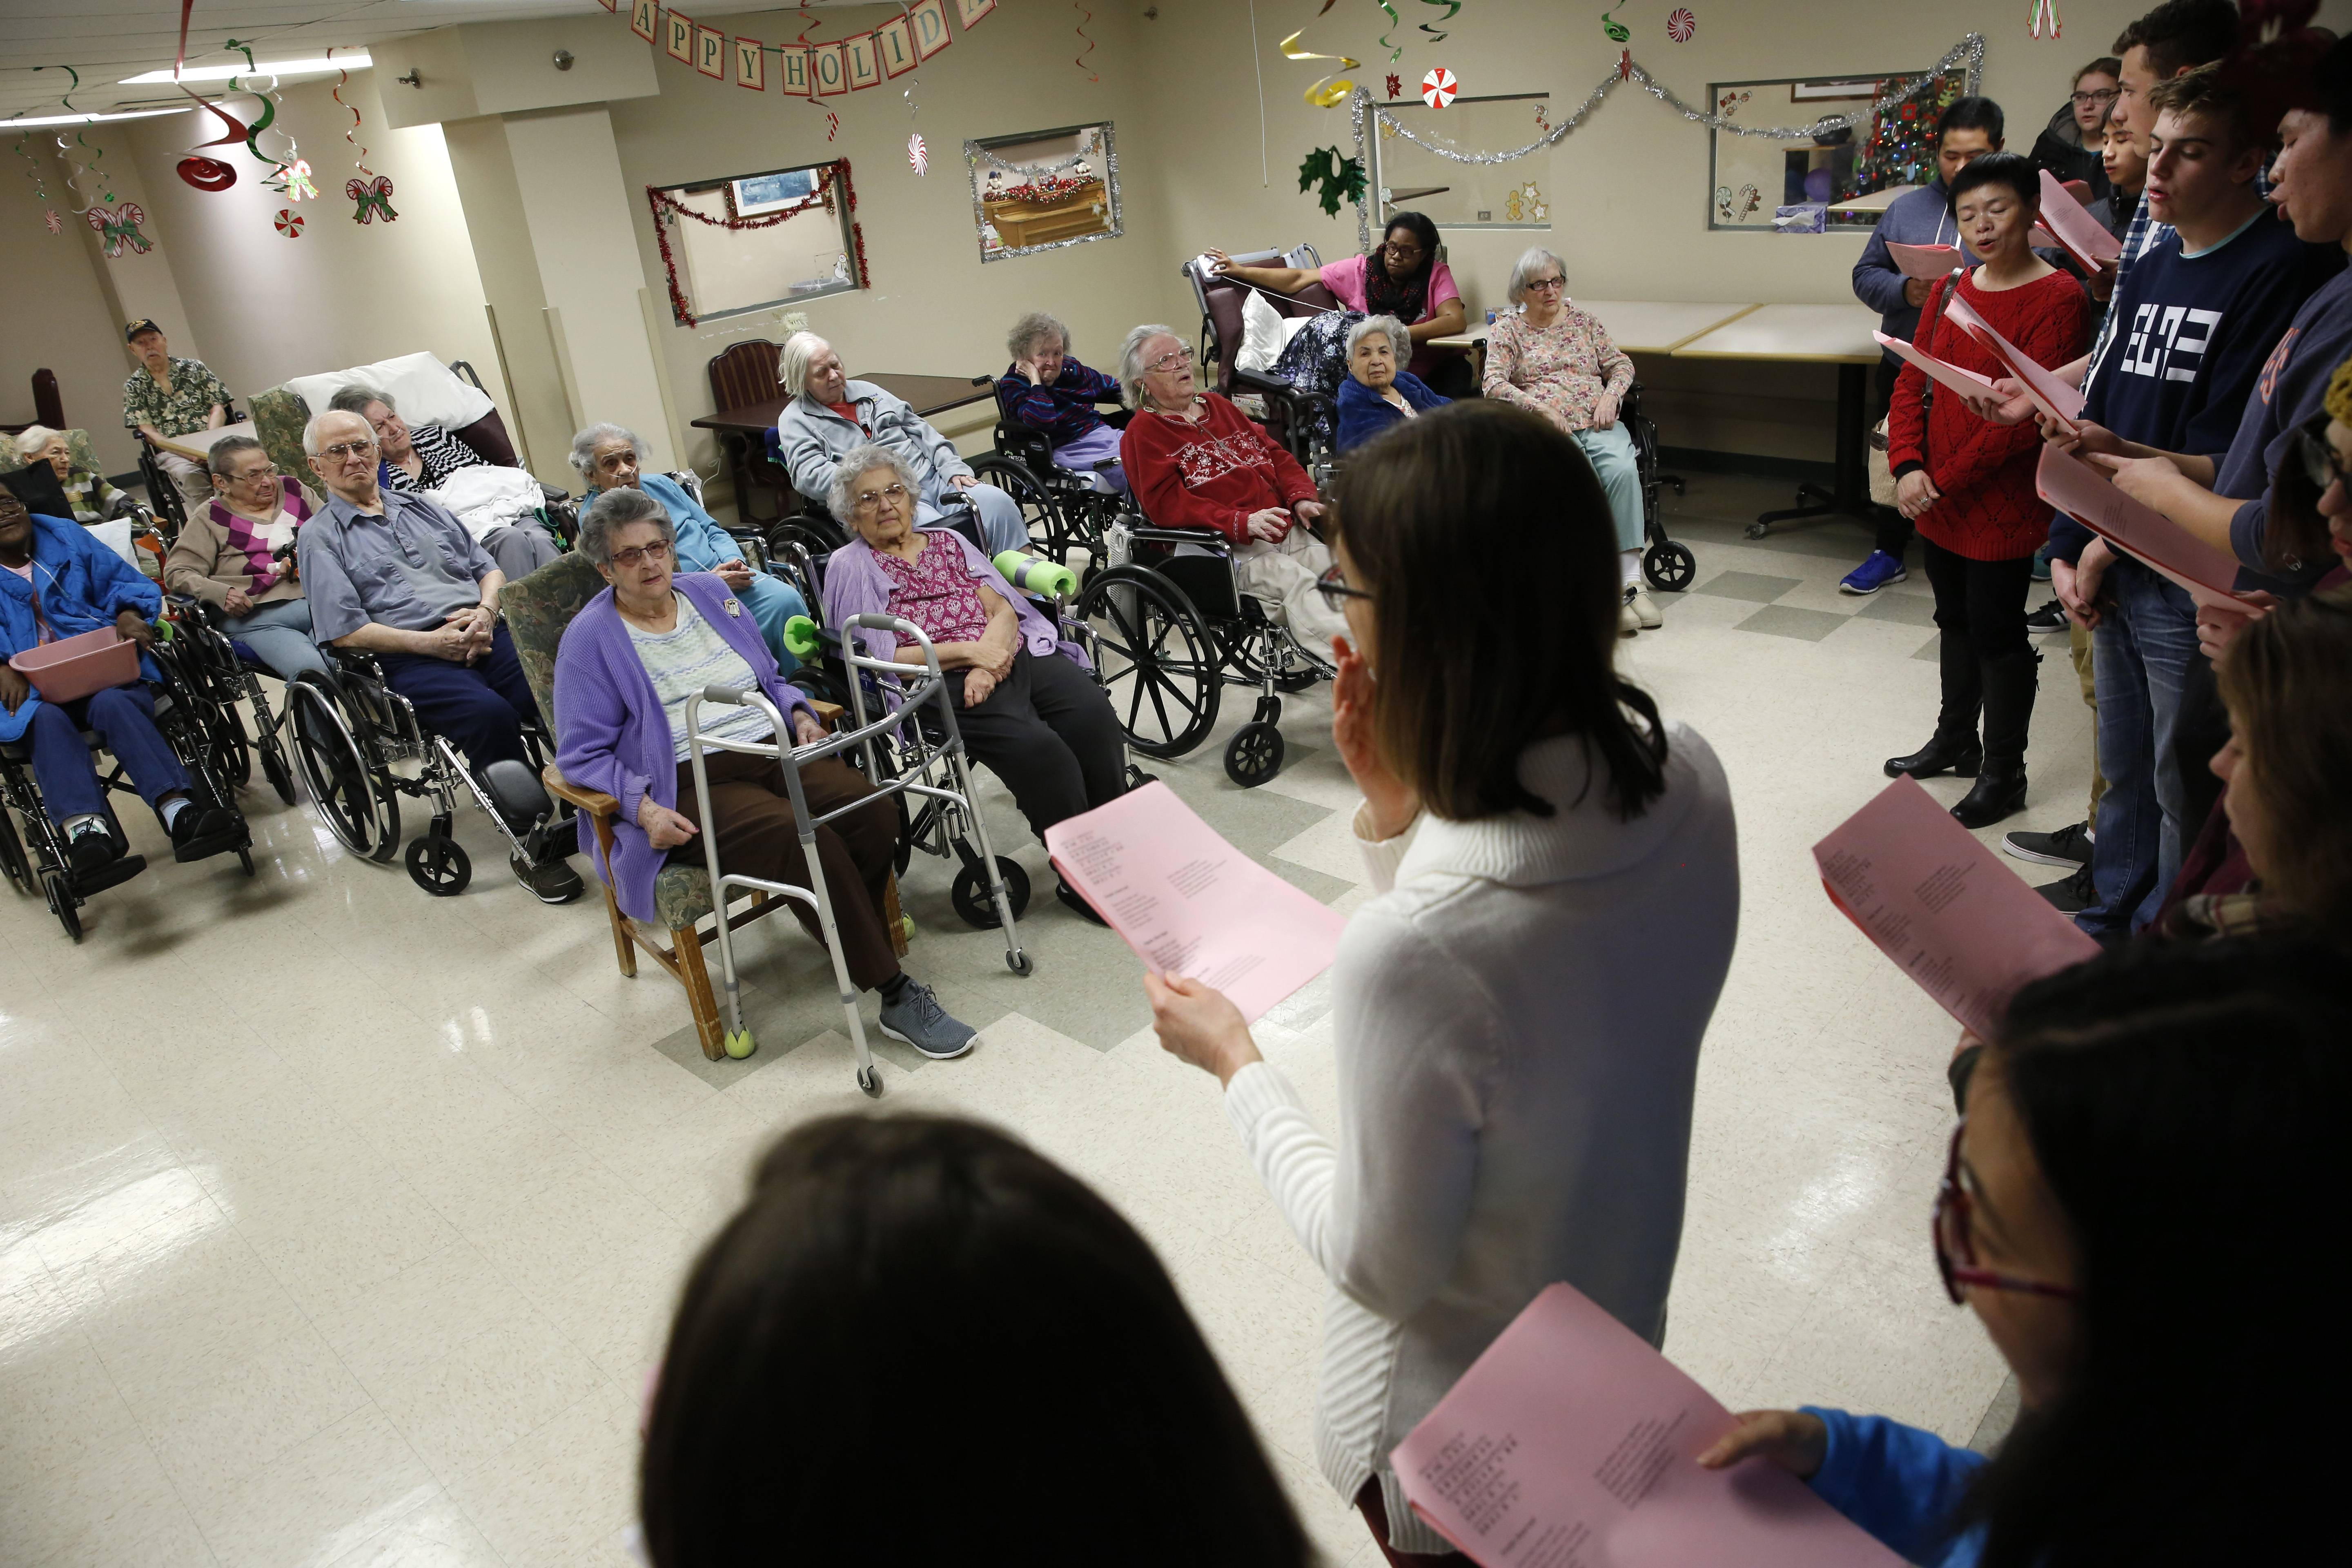 Naperville North High School students who study foreign languages sing holiday carols in Latin, German, Chinese, Spanish, Italian and French to residents at Community Nursing and Rehab in Naperville.